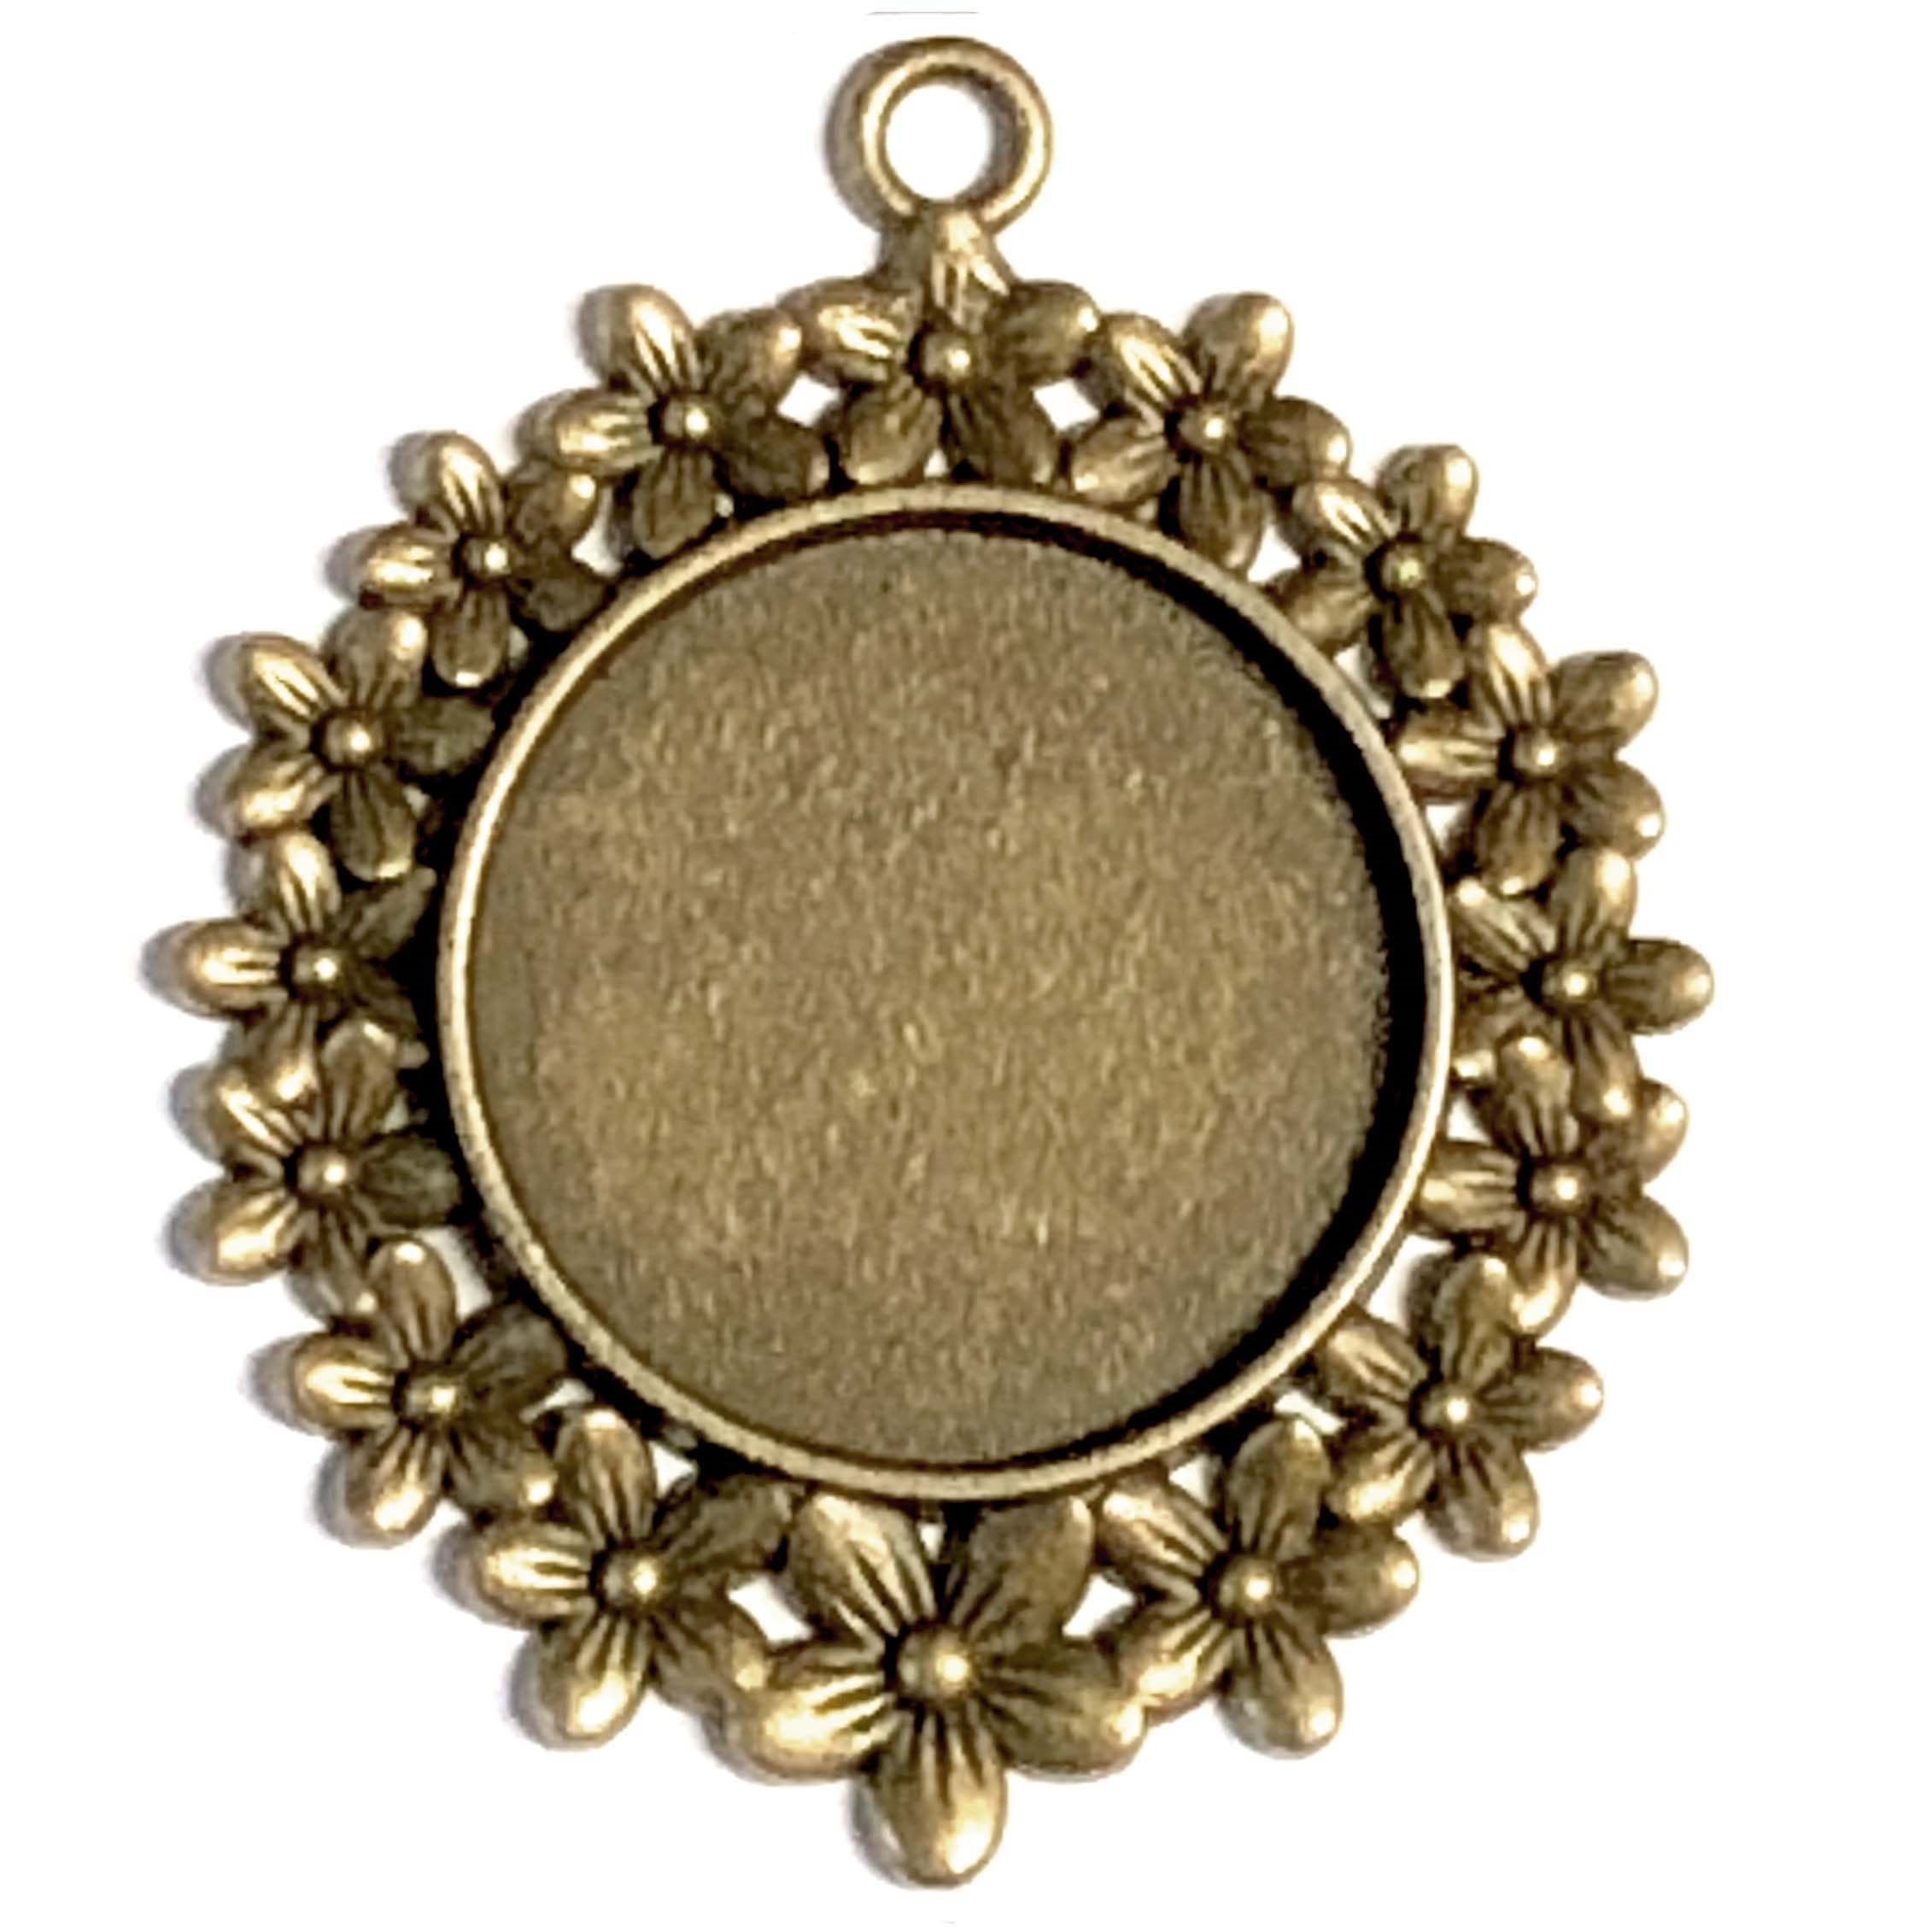 Cast Daisy Pendant Mount, daisy border, cameo charm, 08261, mount, jewelry mount, jewelry supplies, B'sue Boutiques, 45x41mm mount, bronze finish, pendant, jewelry making supplies,